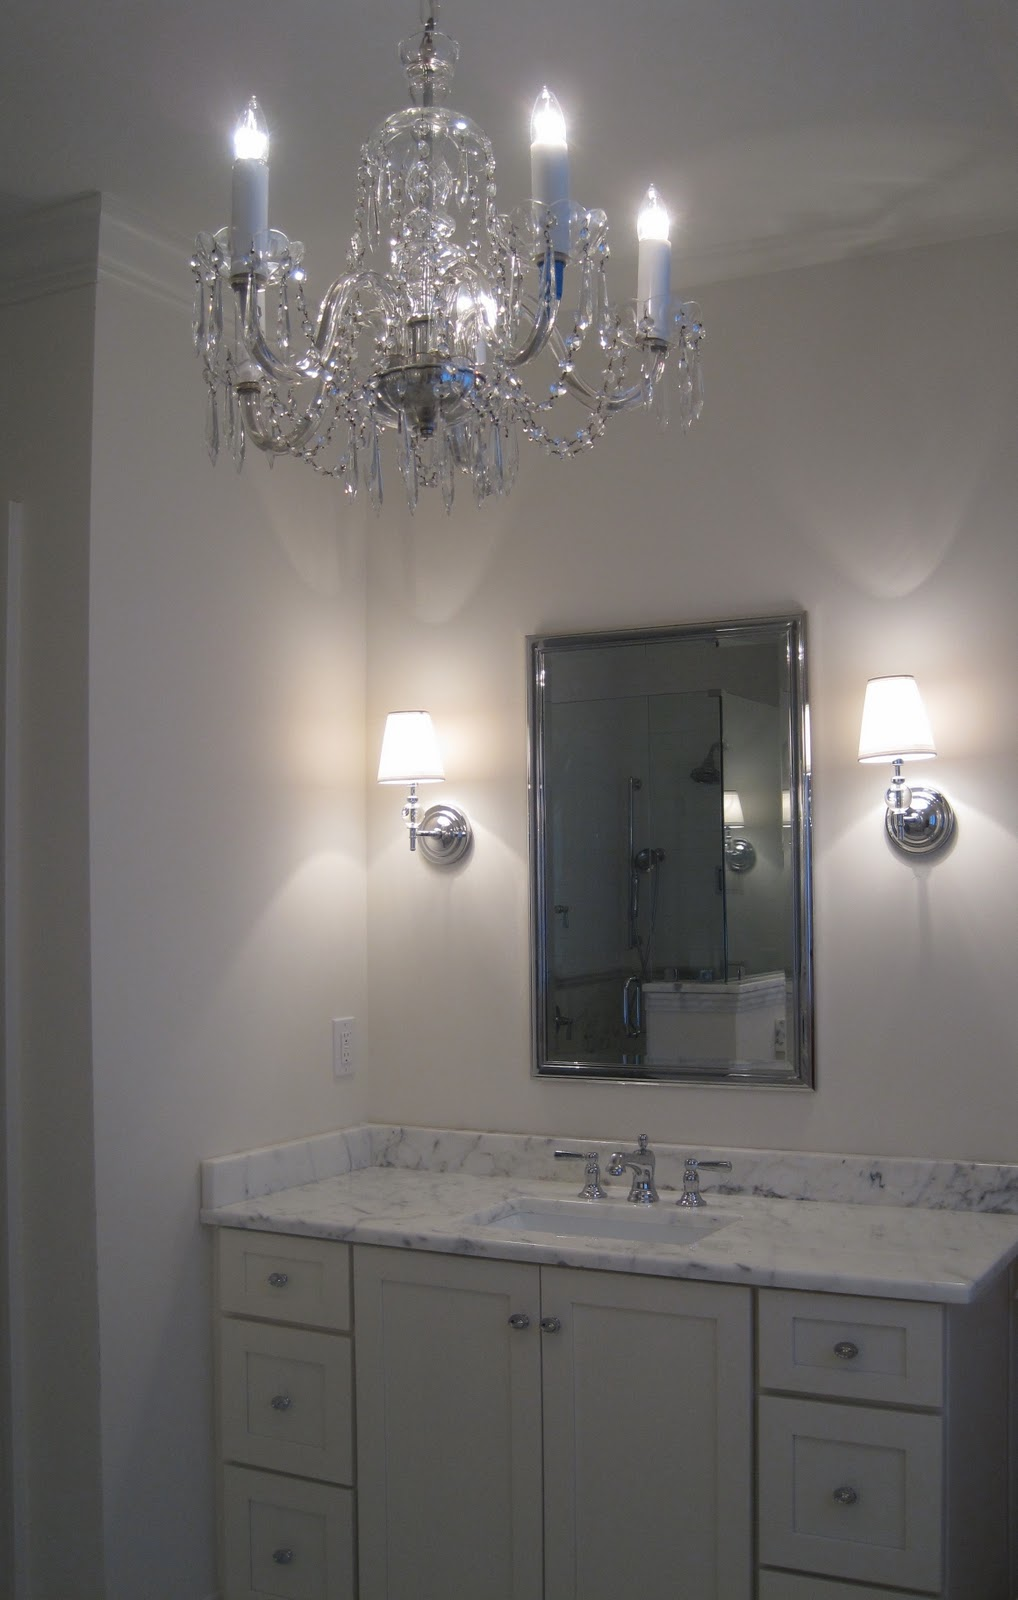 Pretty old houses new old crystal chandelier in the bathroom - Small bathroom chandelier crystal ...